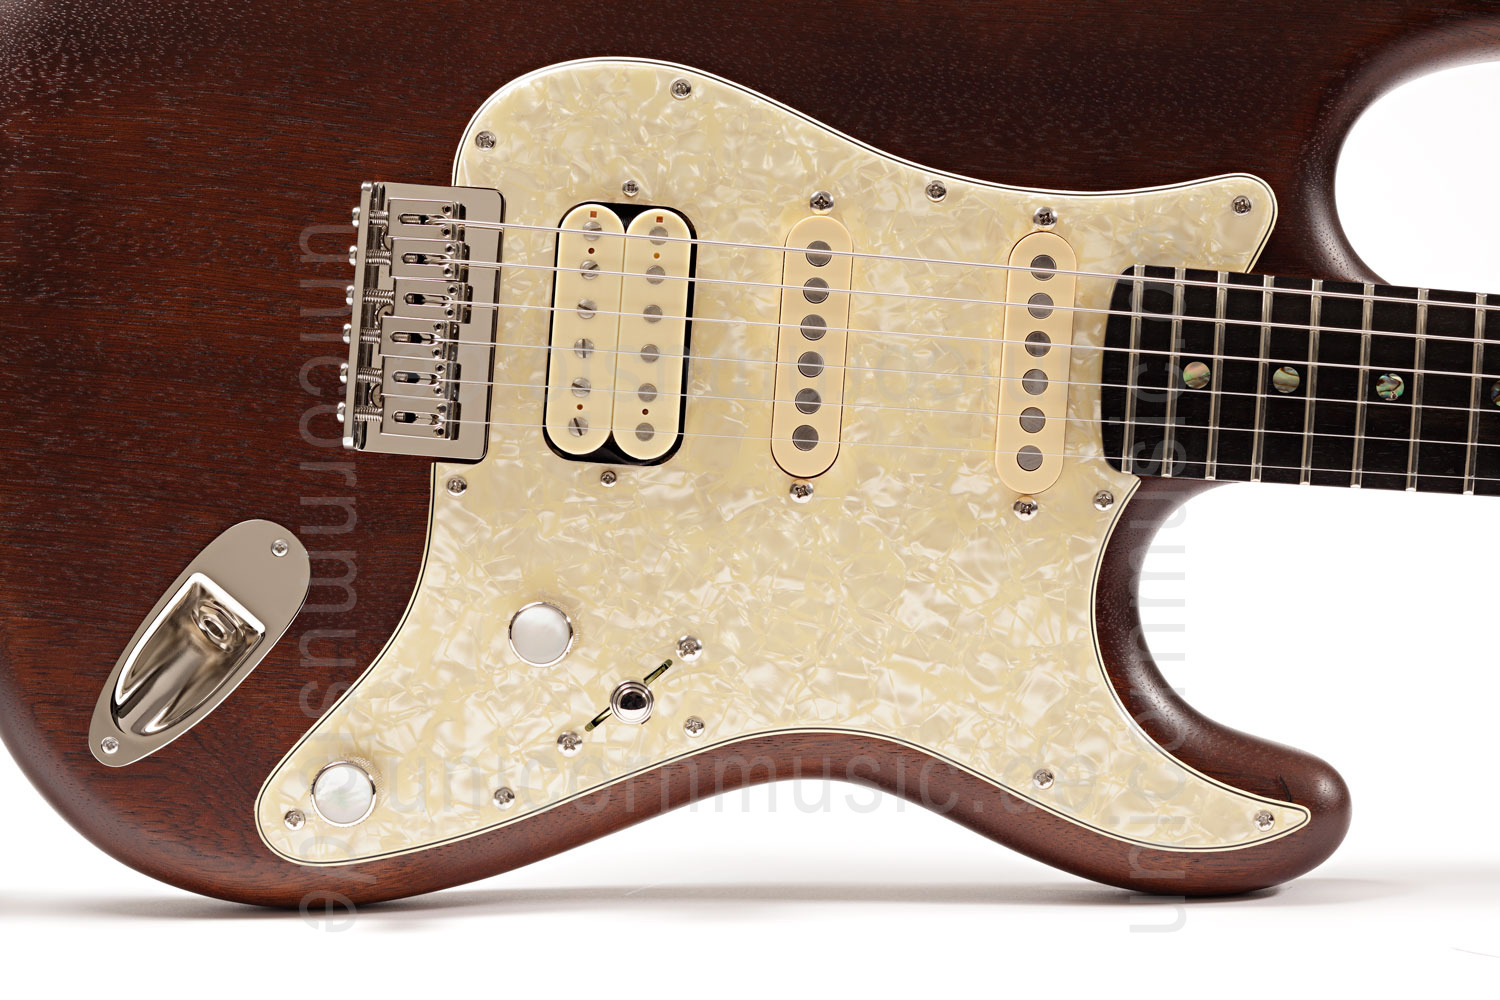 to article description / price Electric Guitar BERSTECHER Deluxe 2018 - Old Whisky / Cream Perloid + hard case - made in Germany